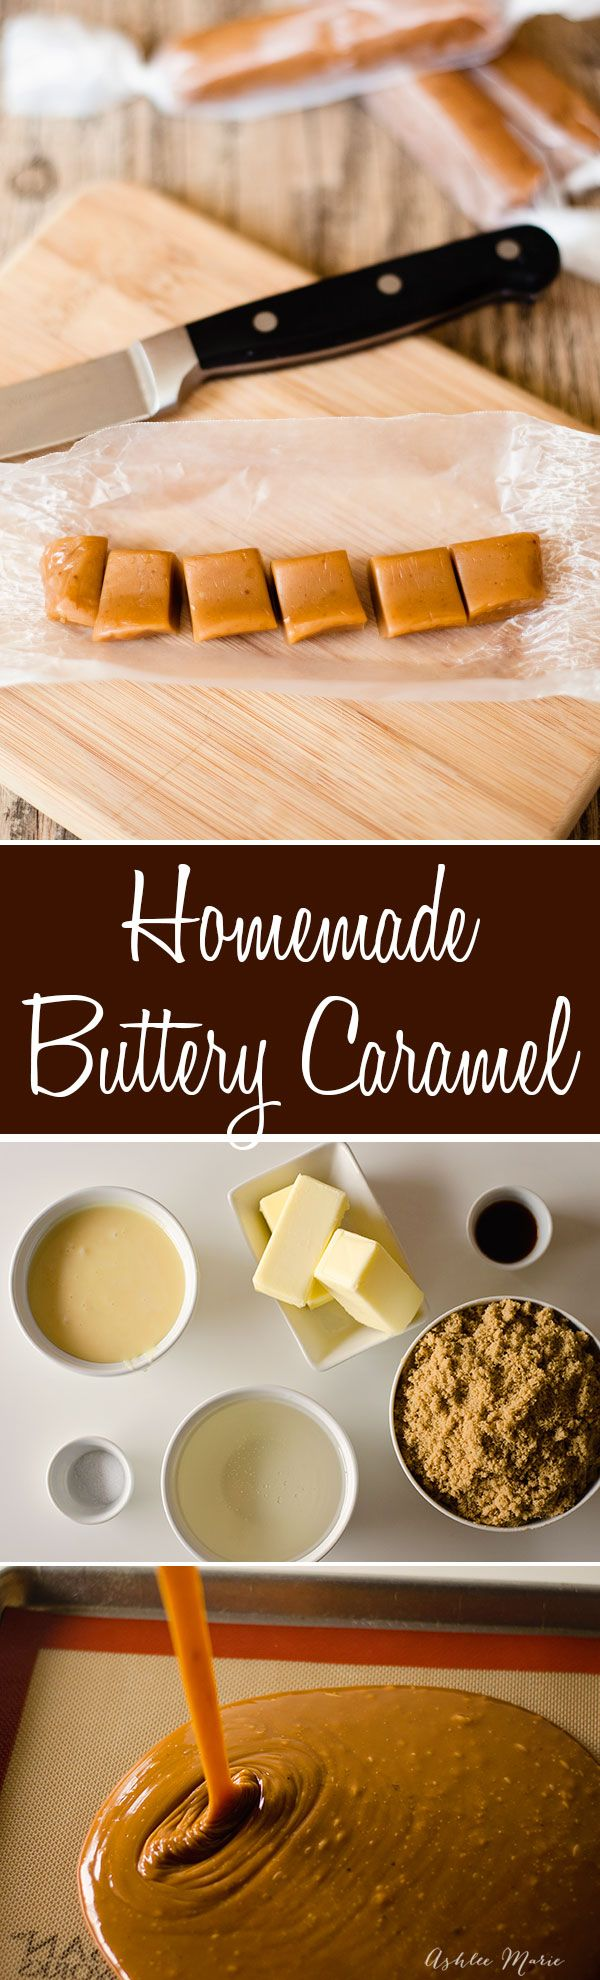 the most amazing buttery homemade caramel recipe you will ever try